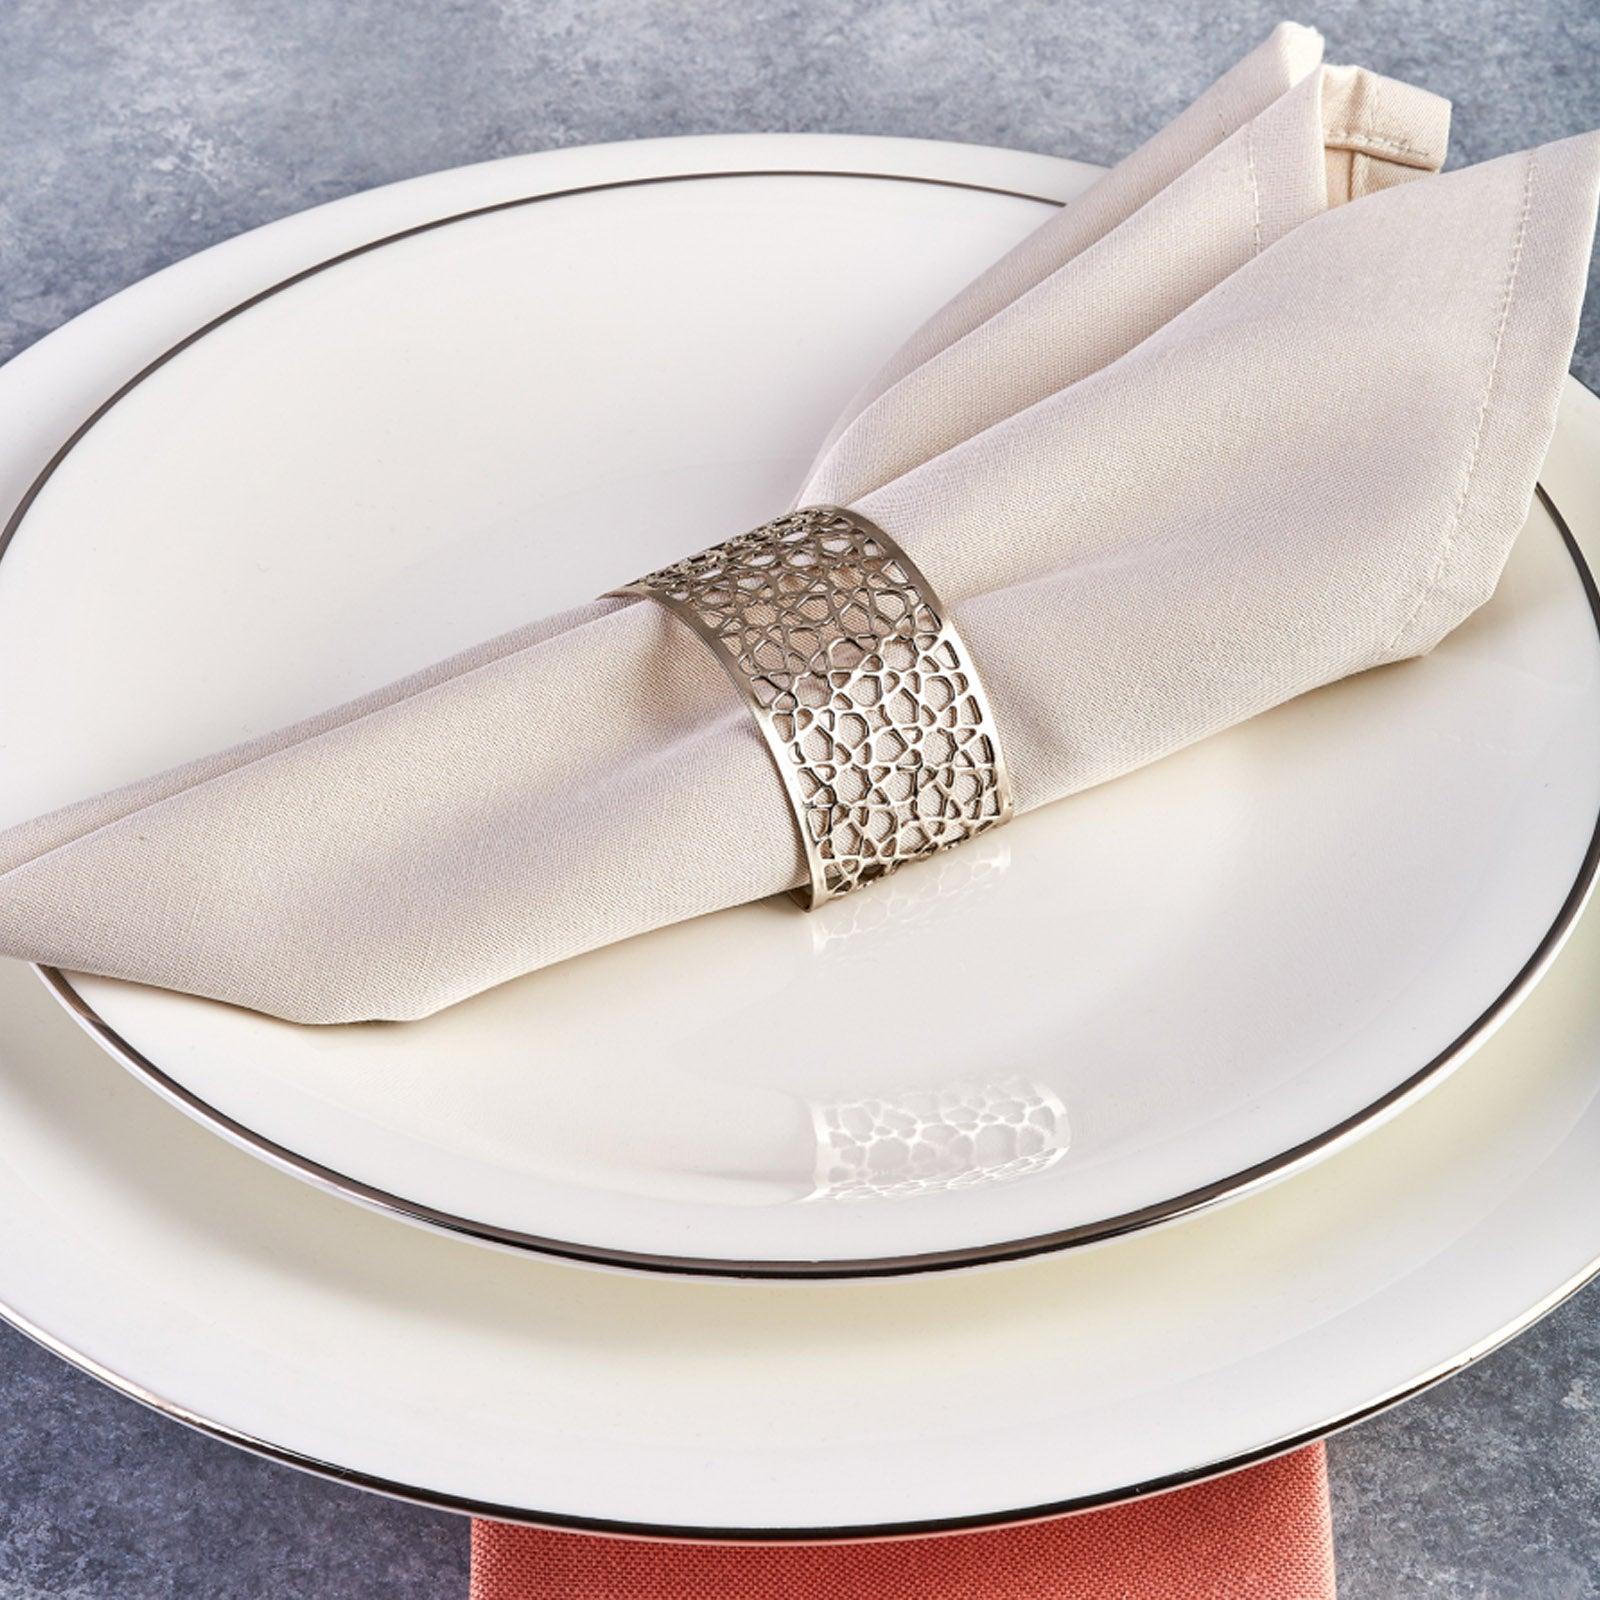 Karaca Seljuk Small 6-Piece Napkin Ring Set Silver 153.19.01.1489